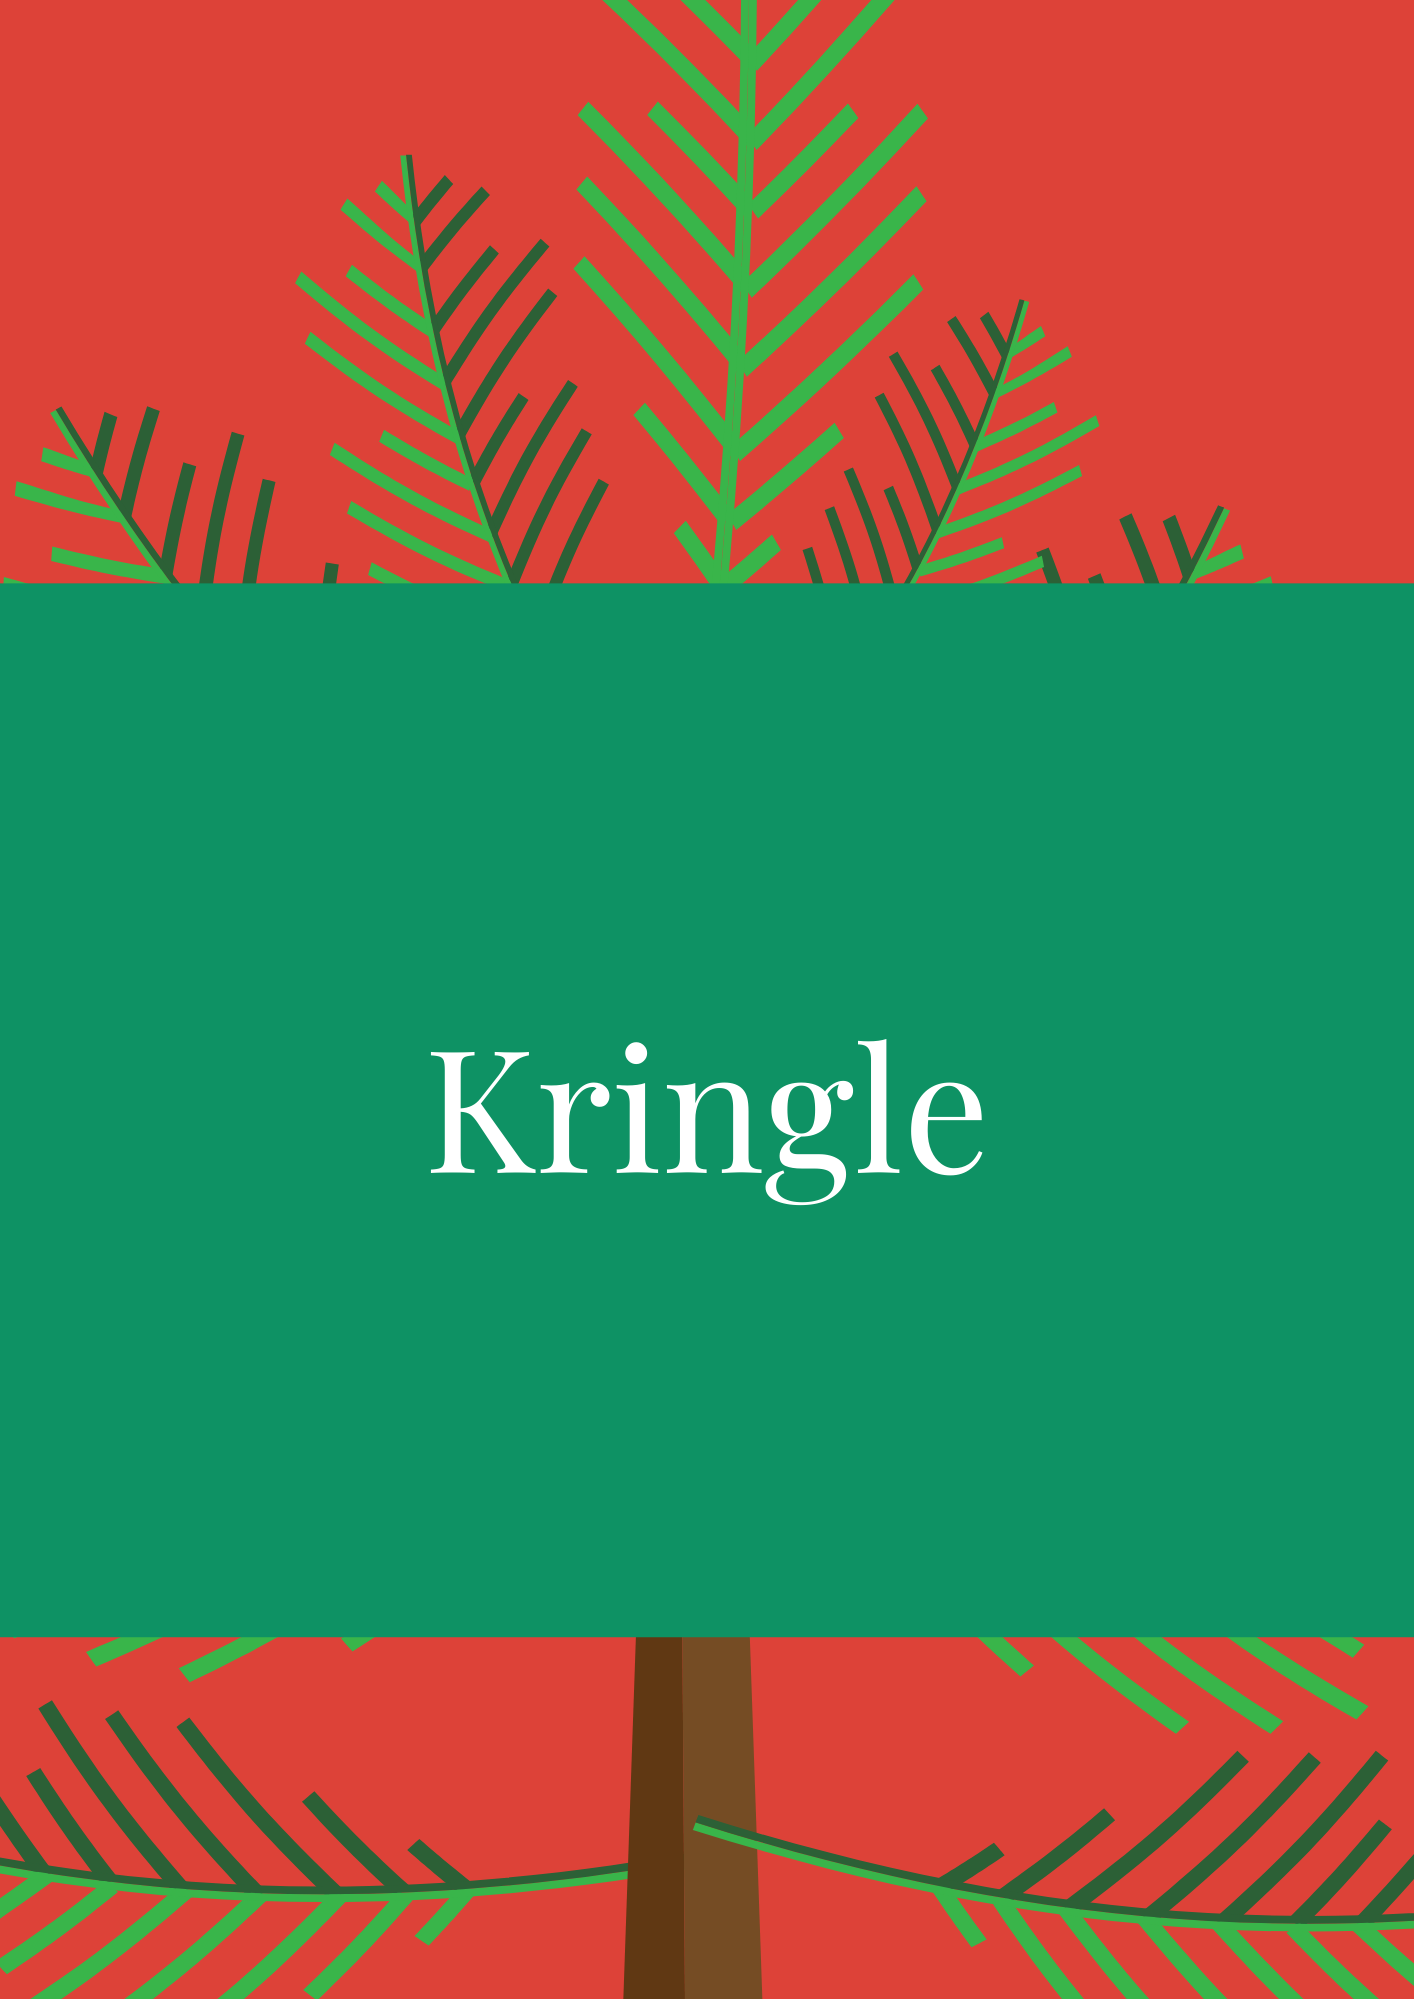 Kringle Elf Names